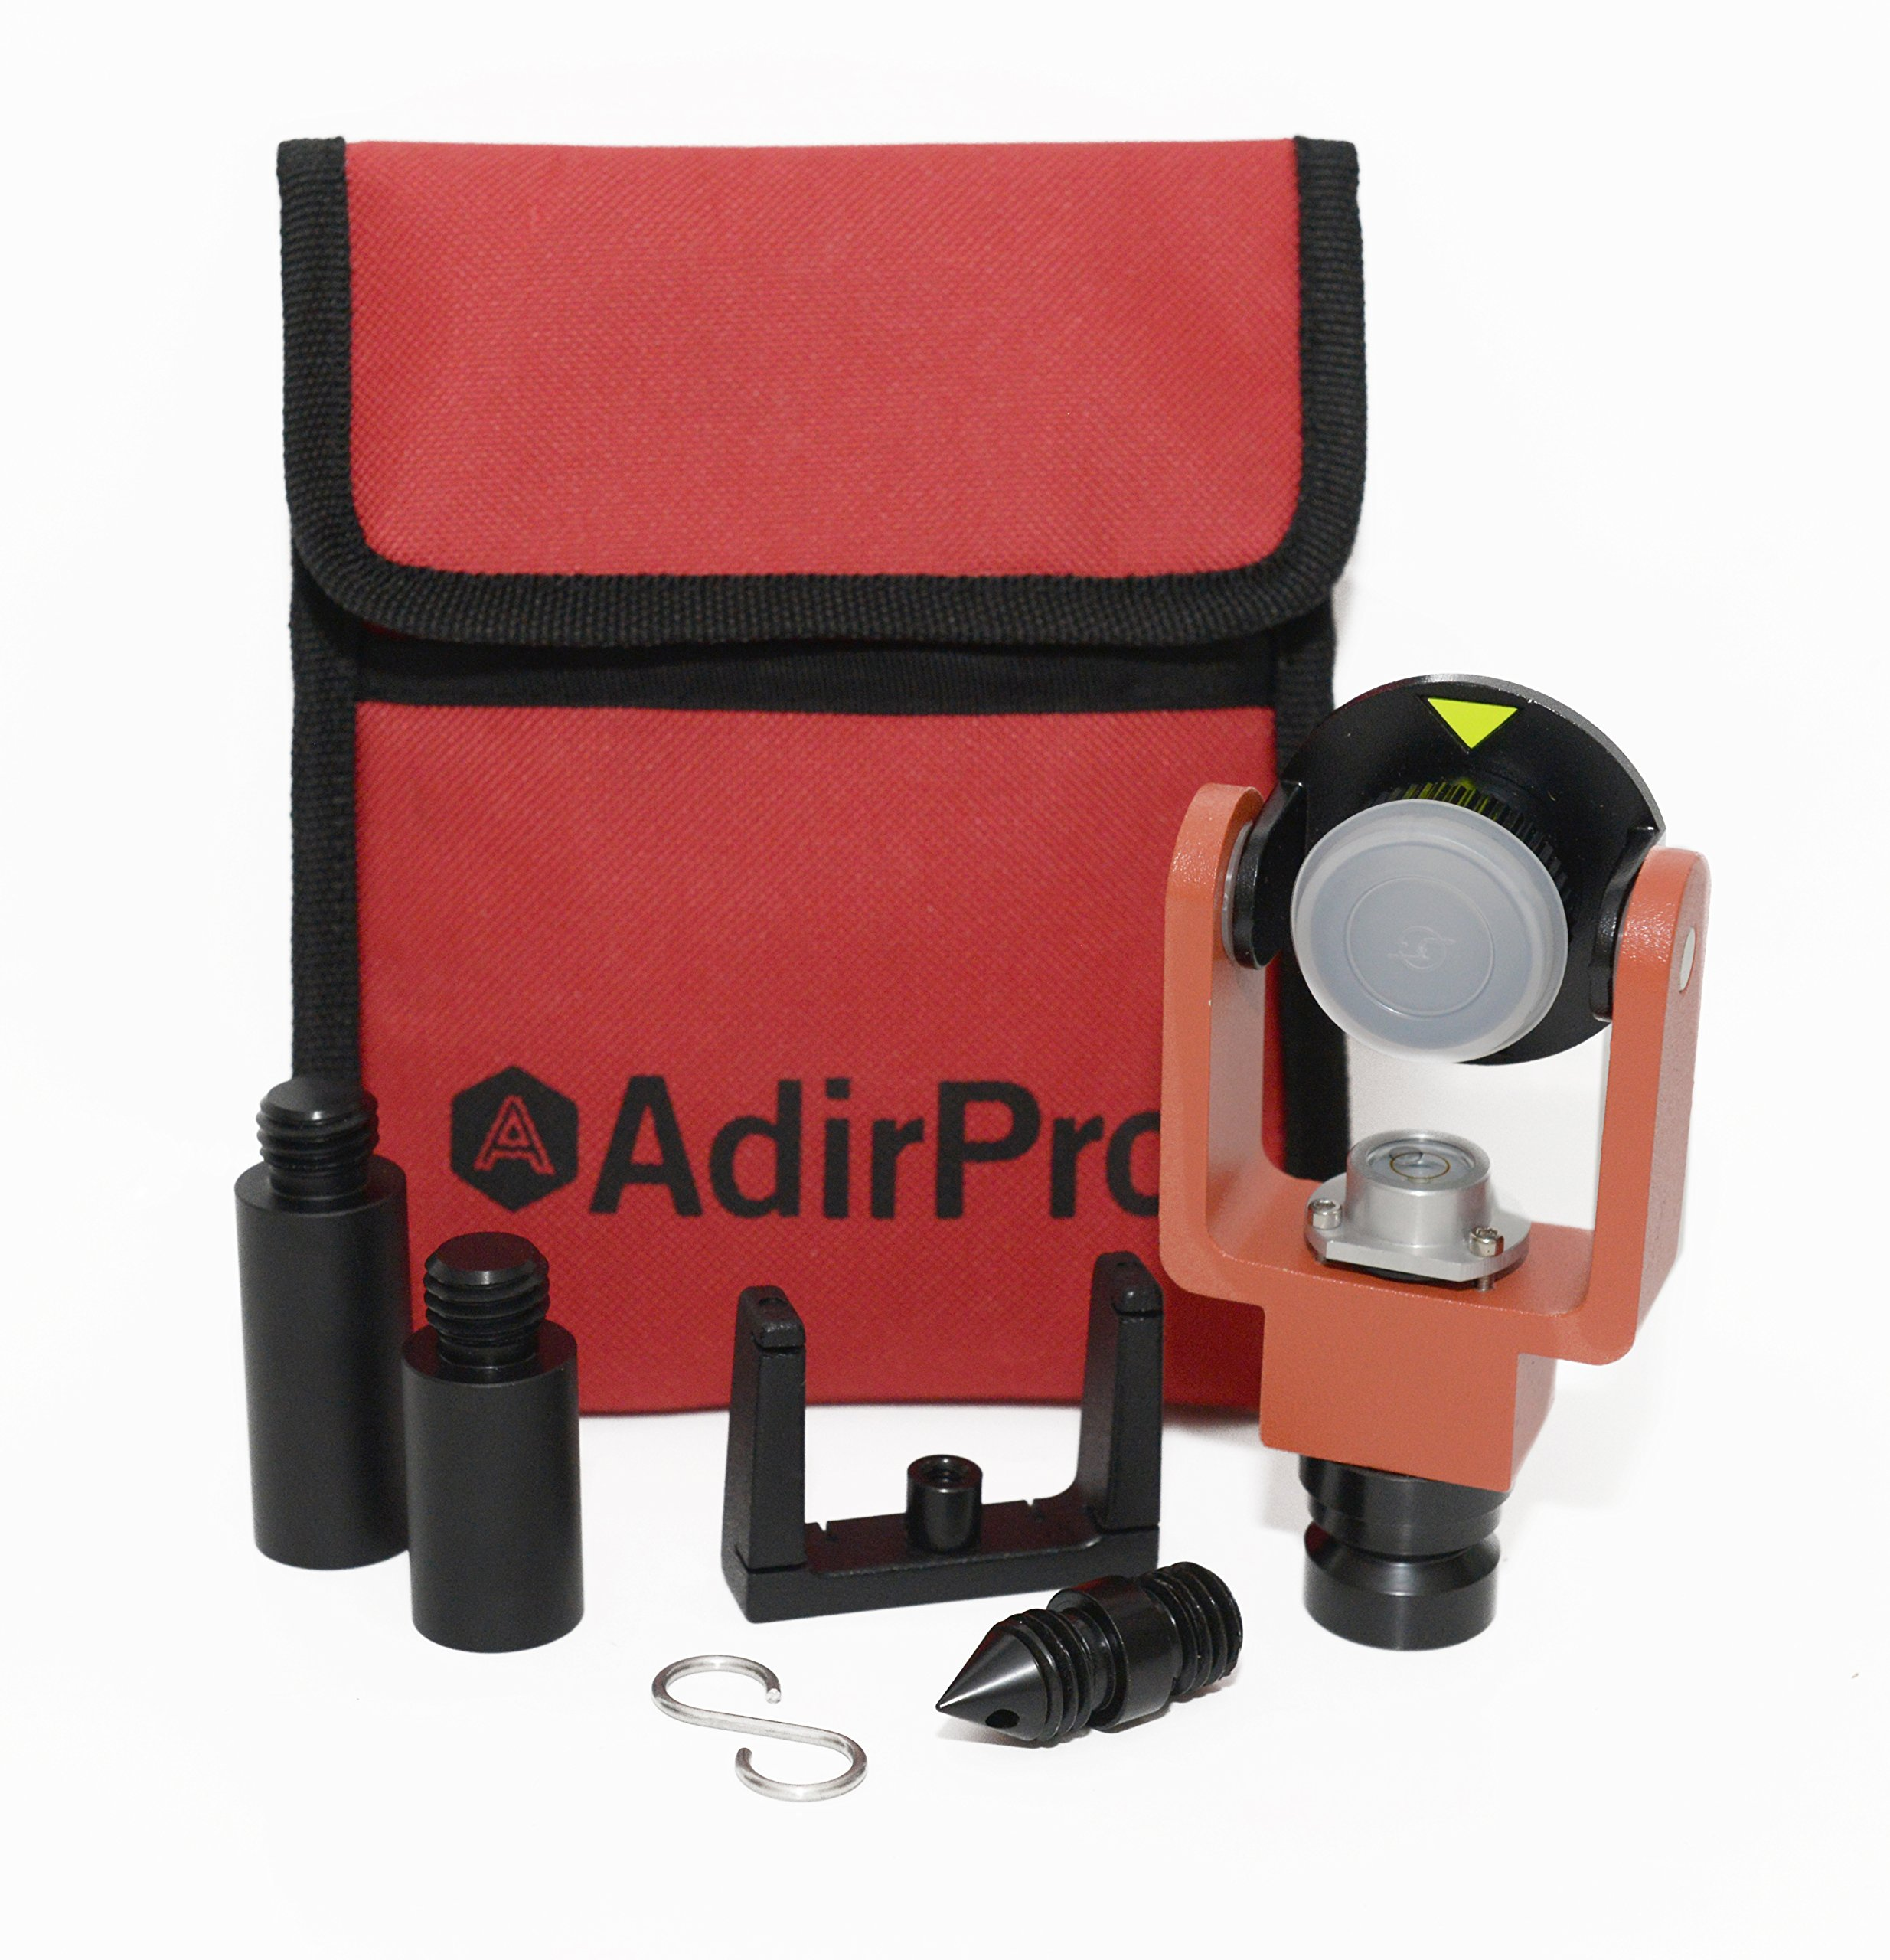 AdirPro Mini Prism System with Center Vial 720-04 by AdirPro